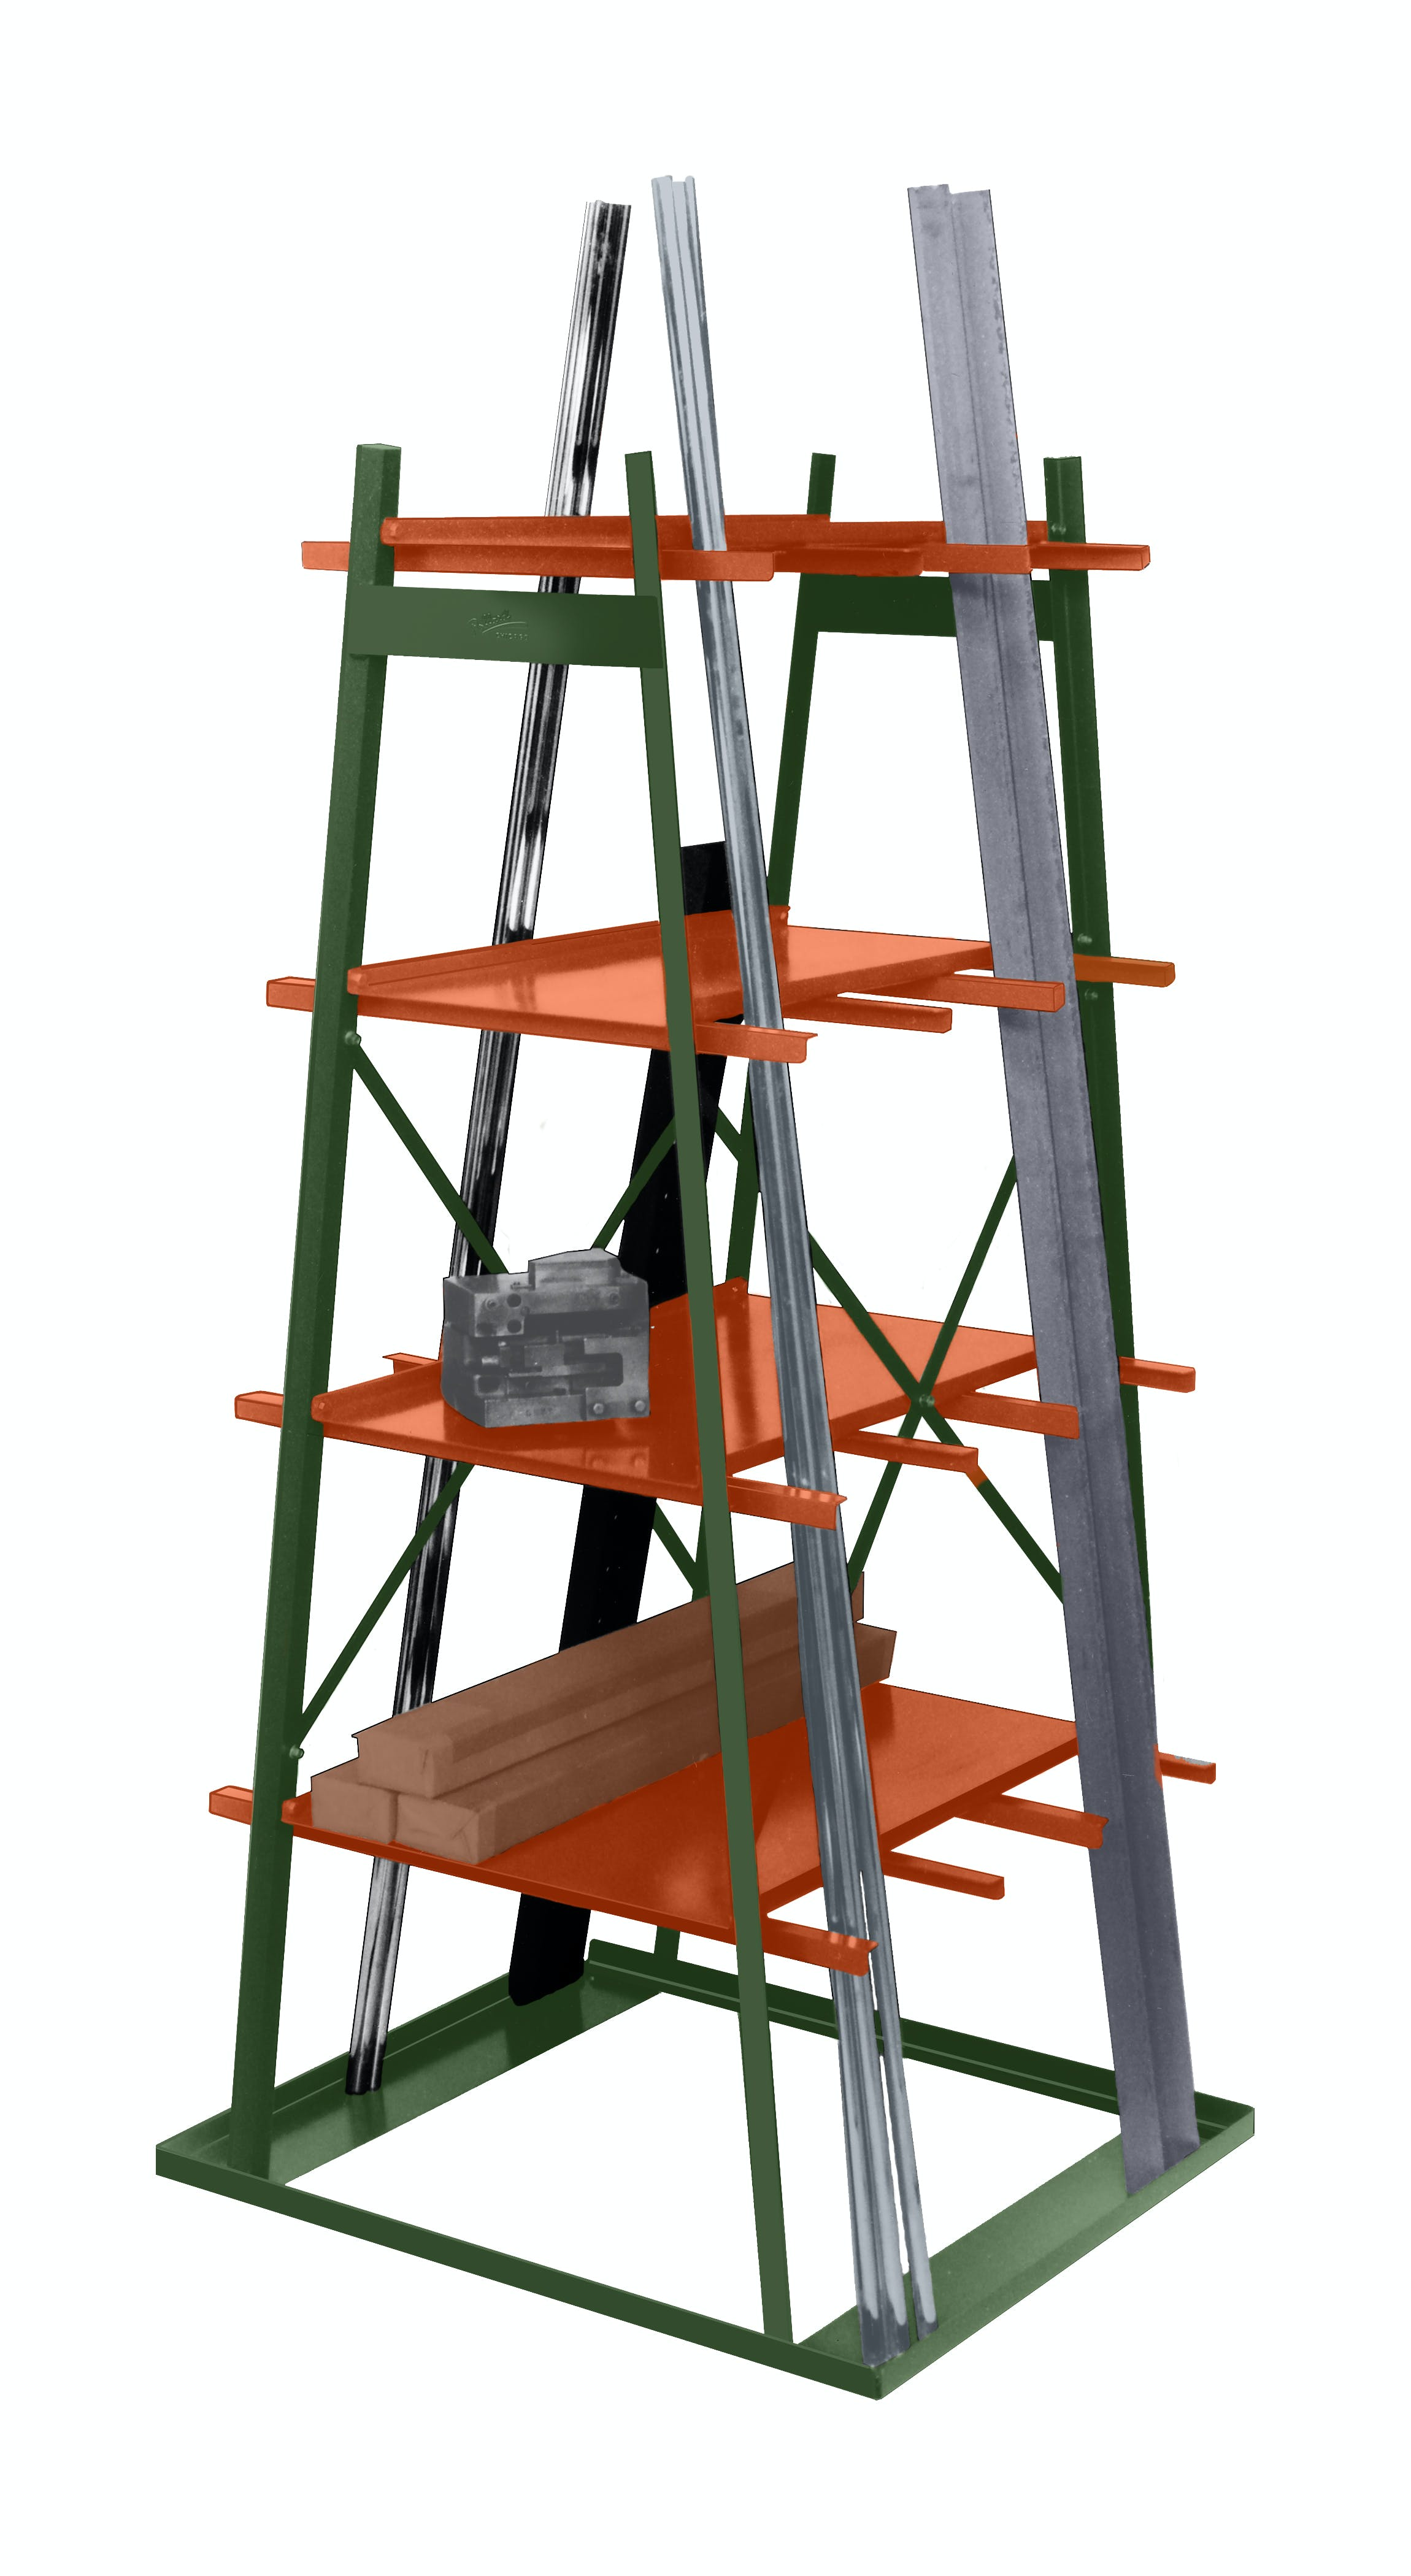 402 Rack Storage shelf sold by Pollard Brothers Manufacturing Company